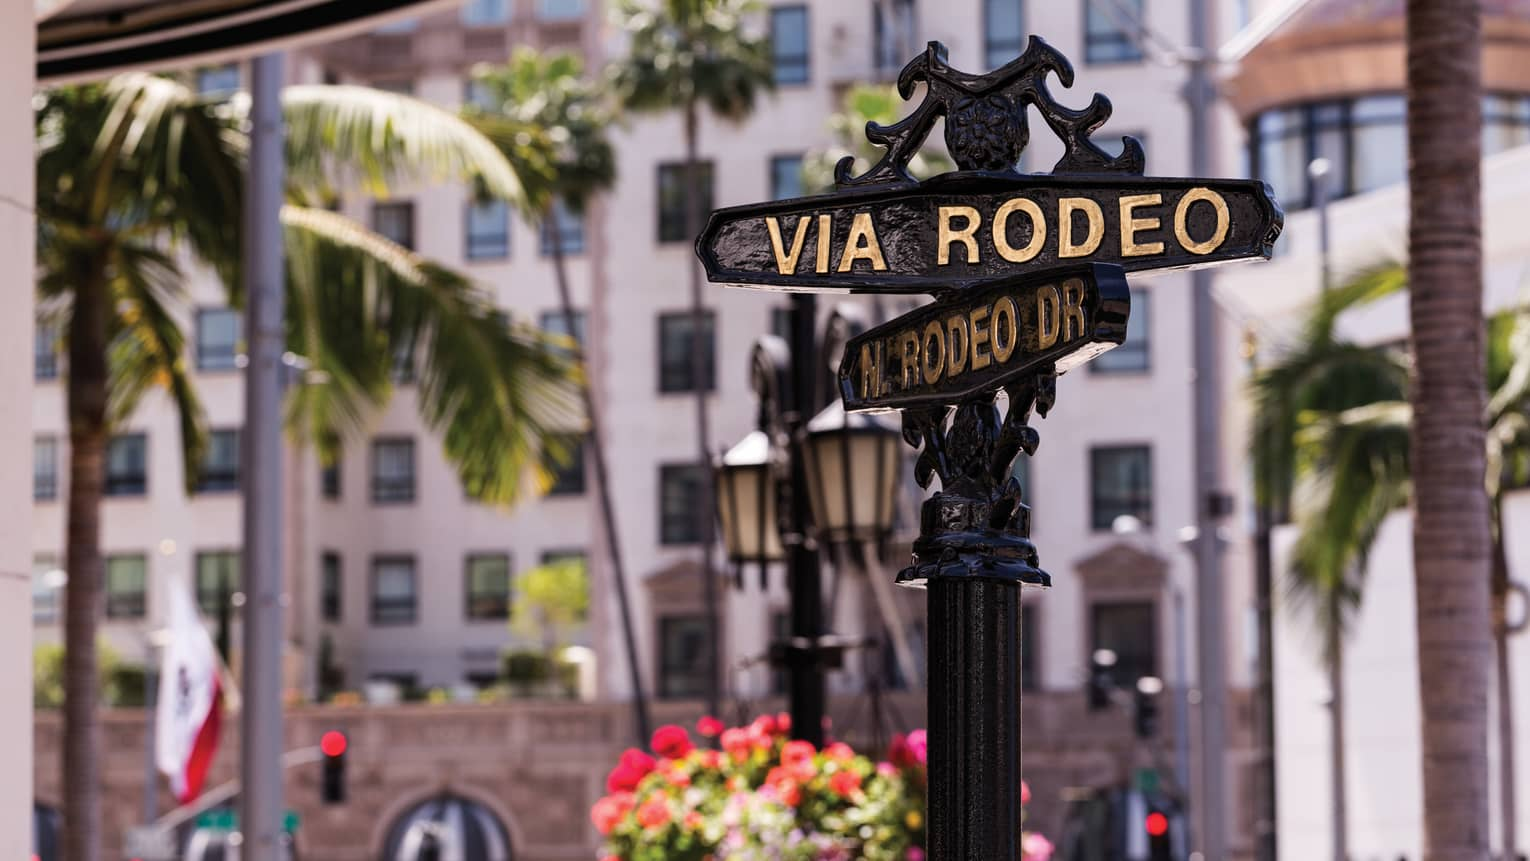 Wrought iron post with Rodeo Drive street signs, palm trees and flowers in background